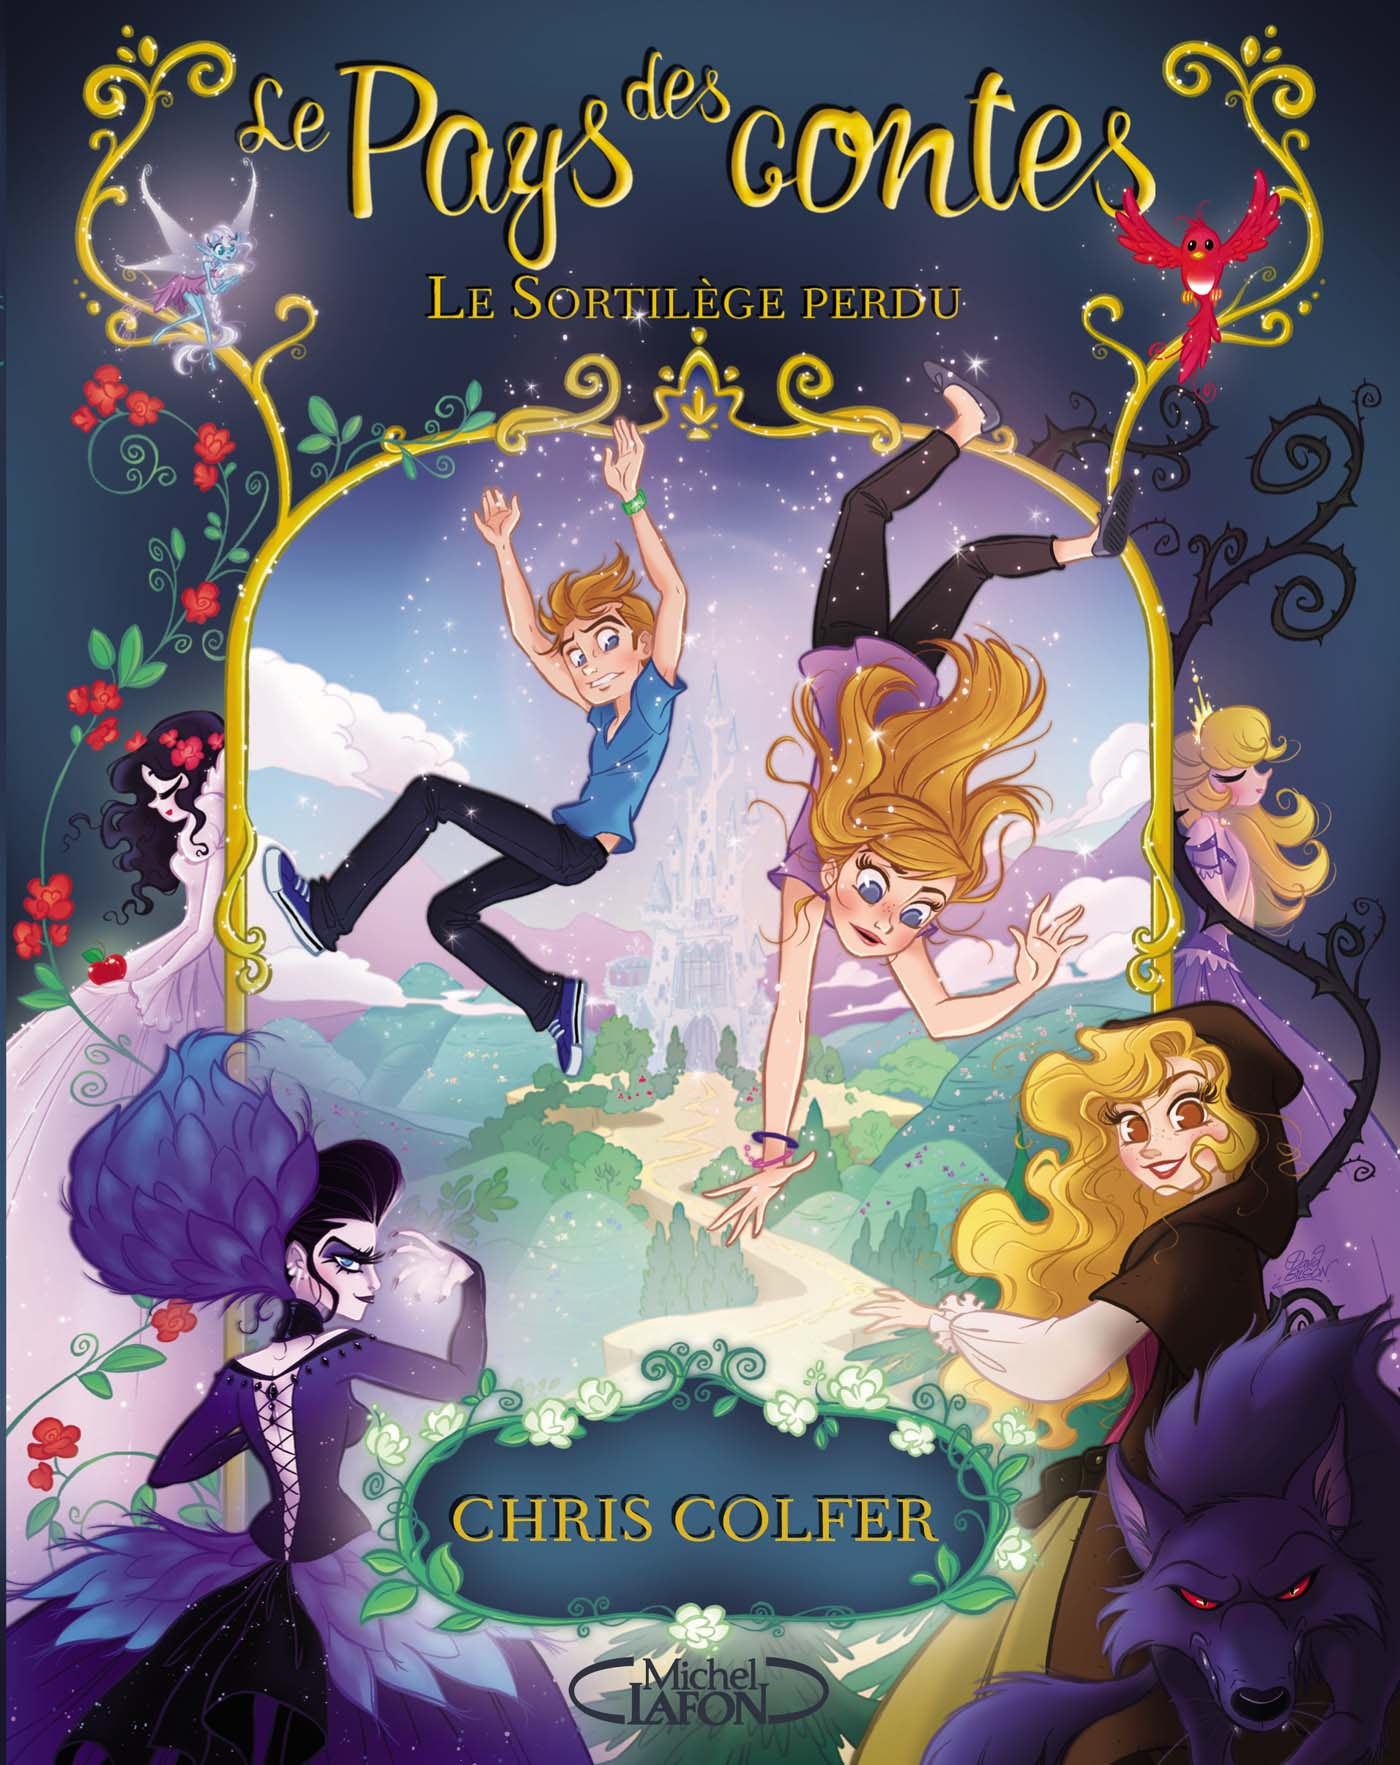 Le Pays des Contes